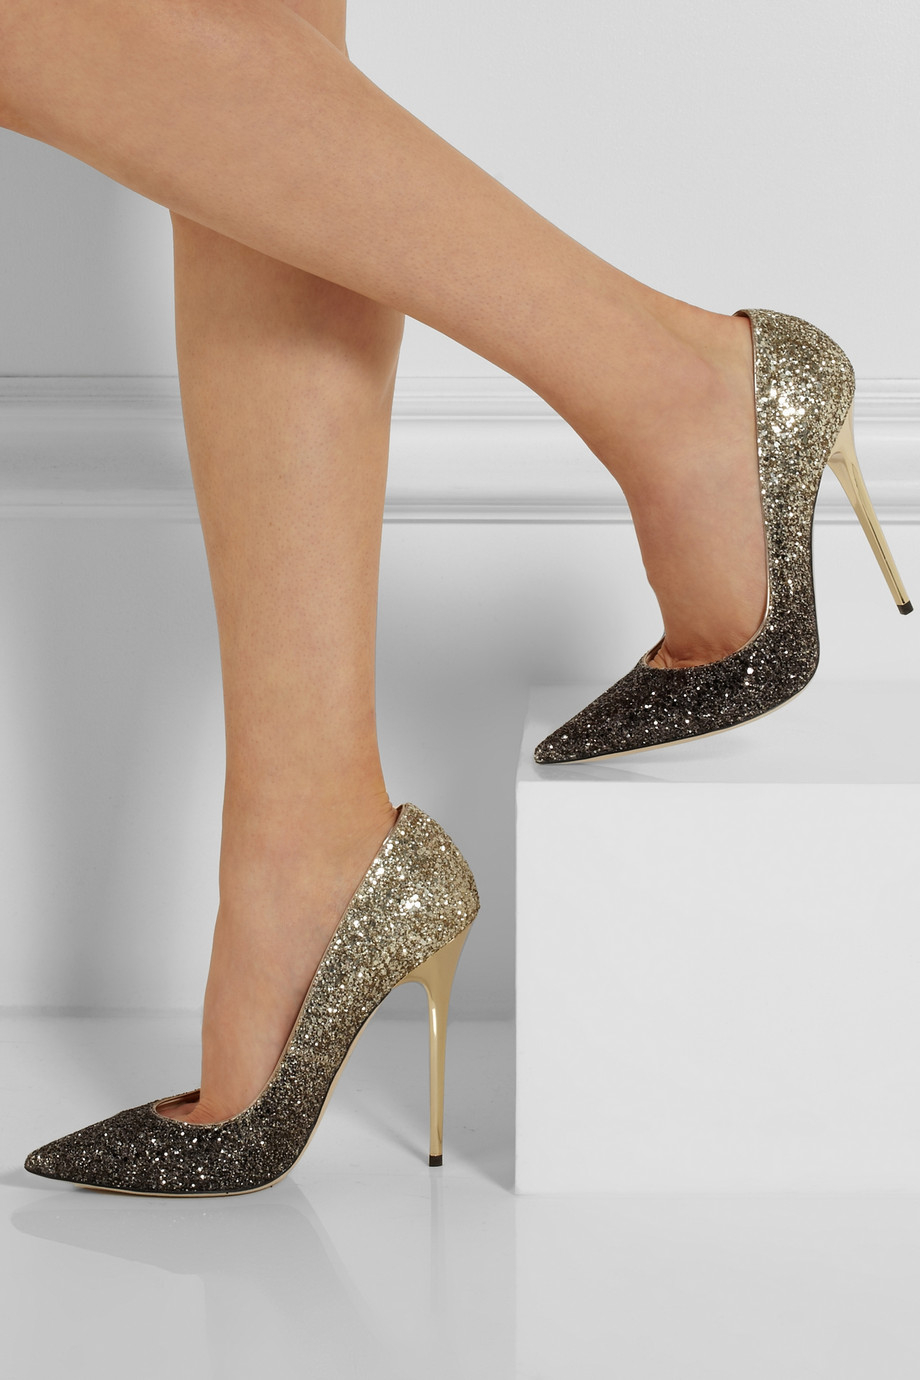 Jimmy Choo Shoes Black And Gold